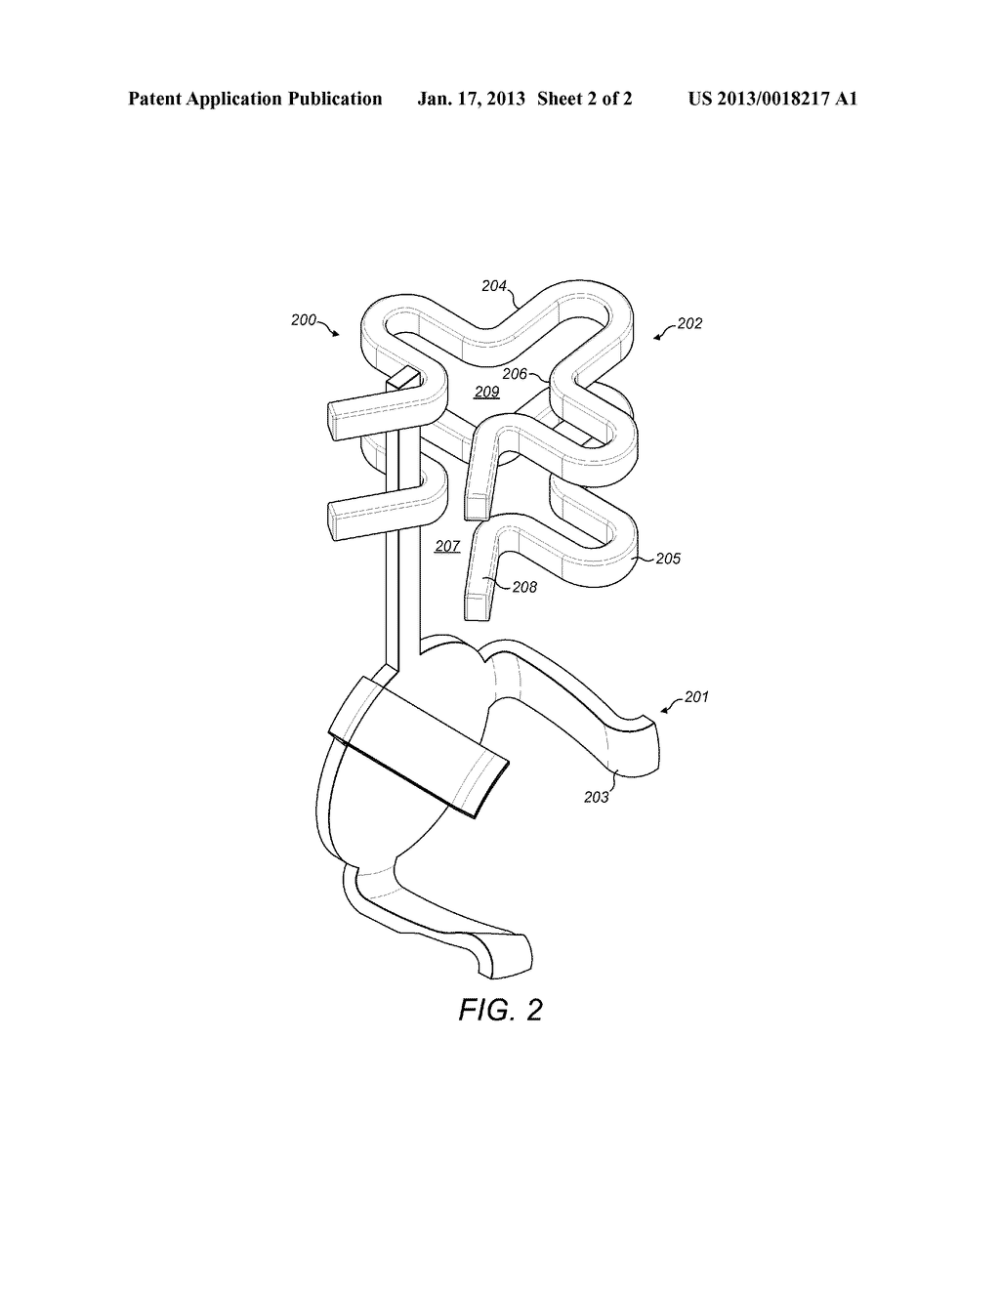 medium resolution of clover shape attachment for implantable floating mass transducer diagram schematic and image 03